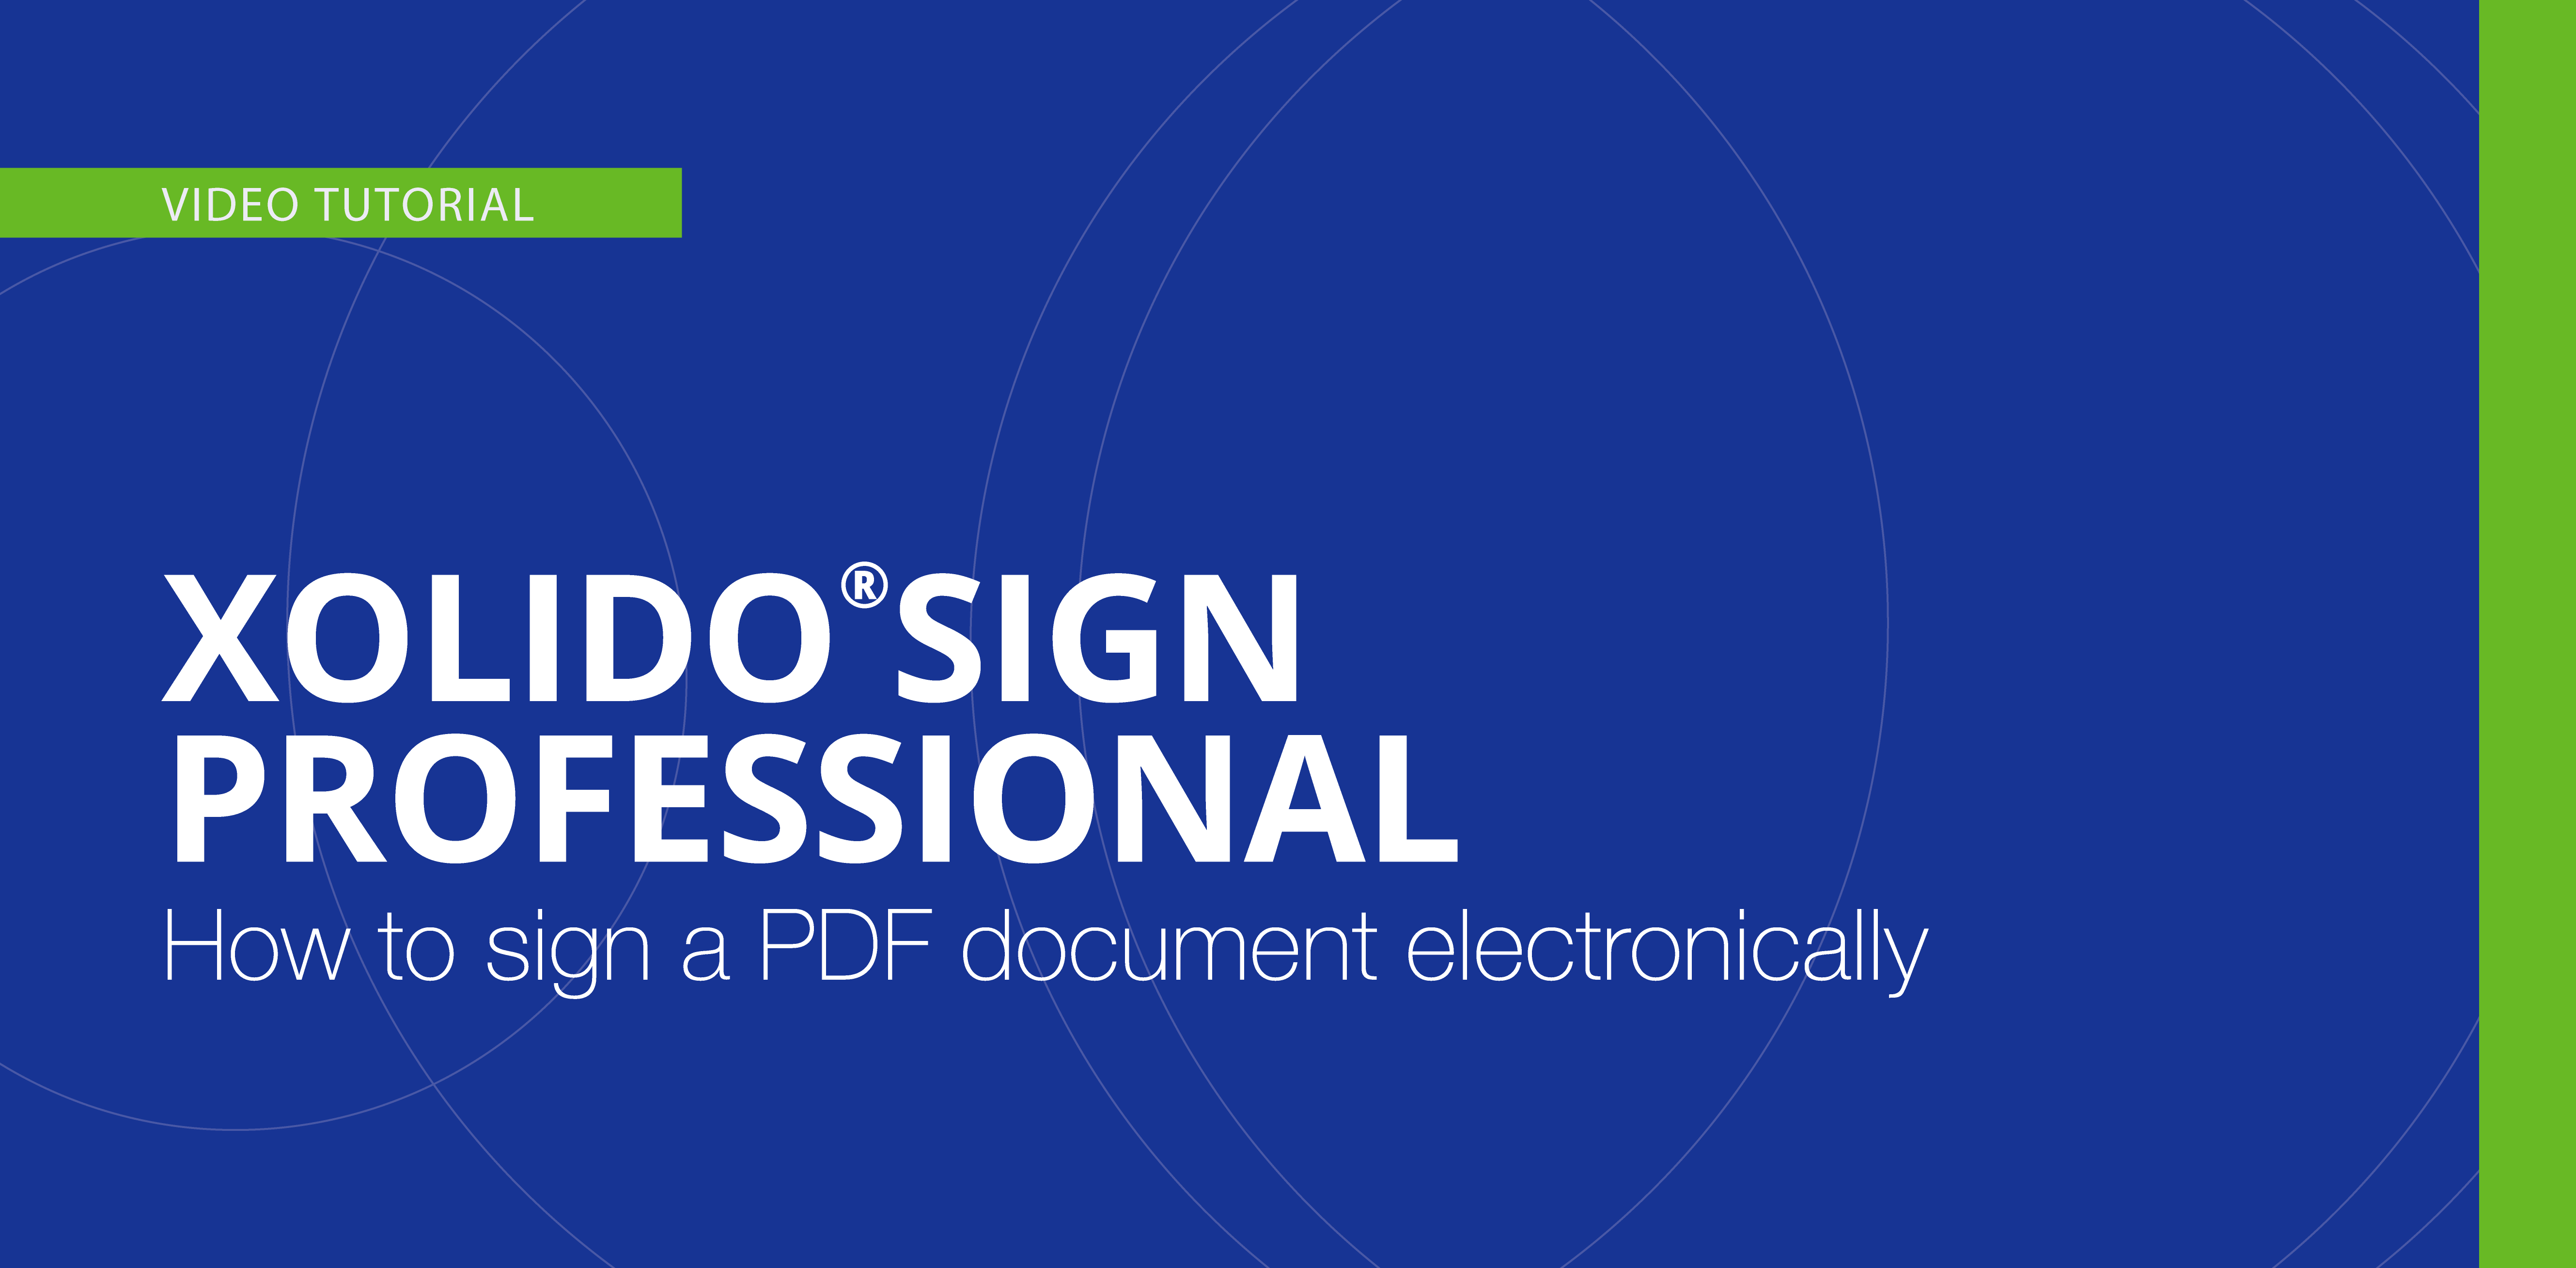 How to sign a pdf document electronically